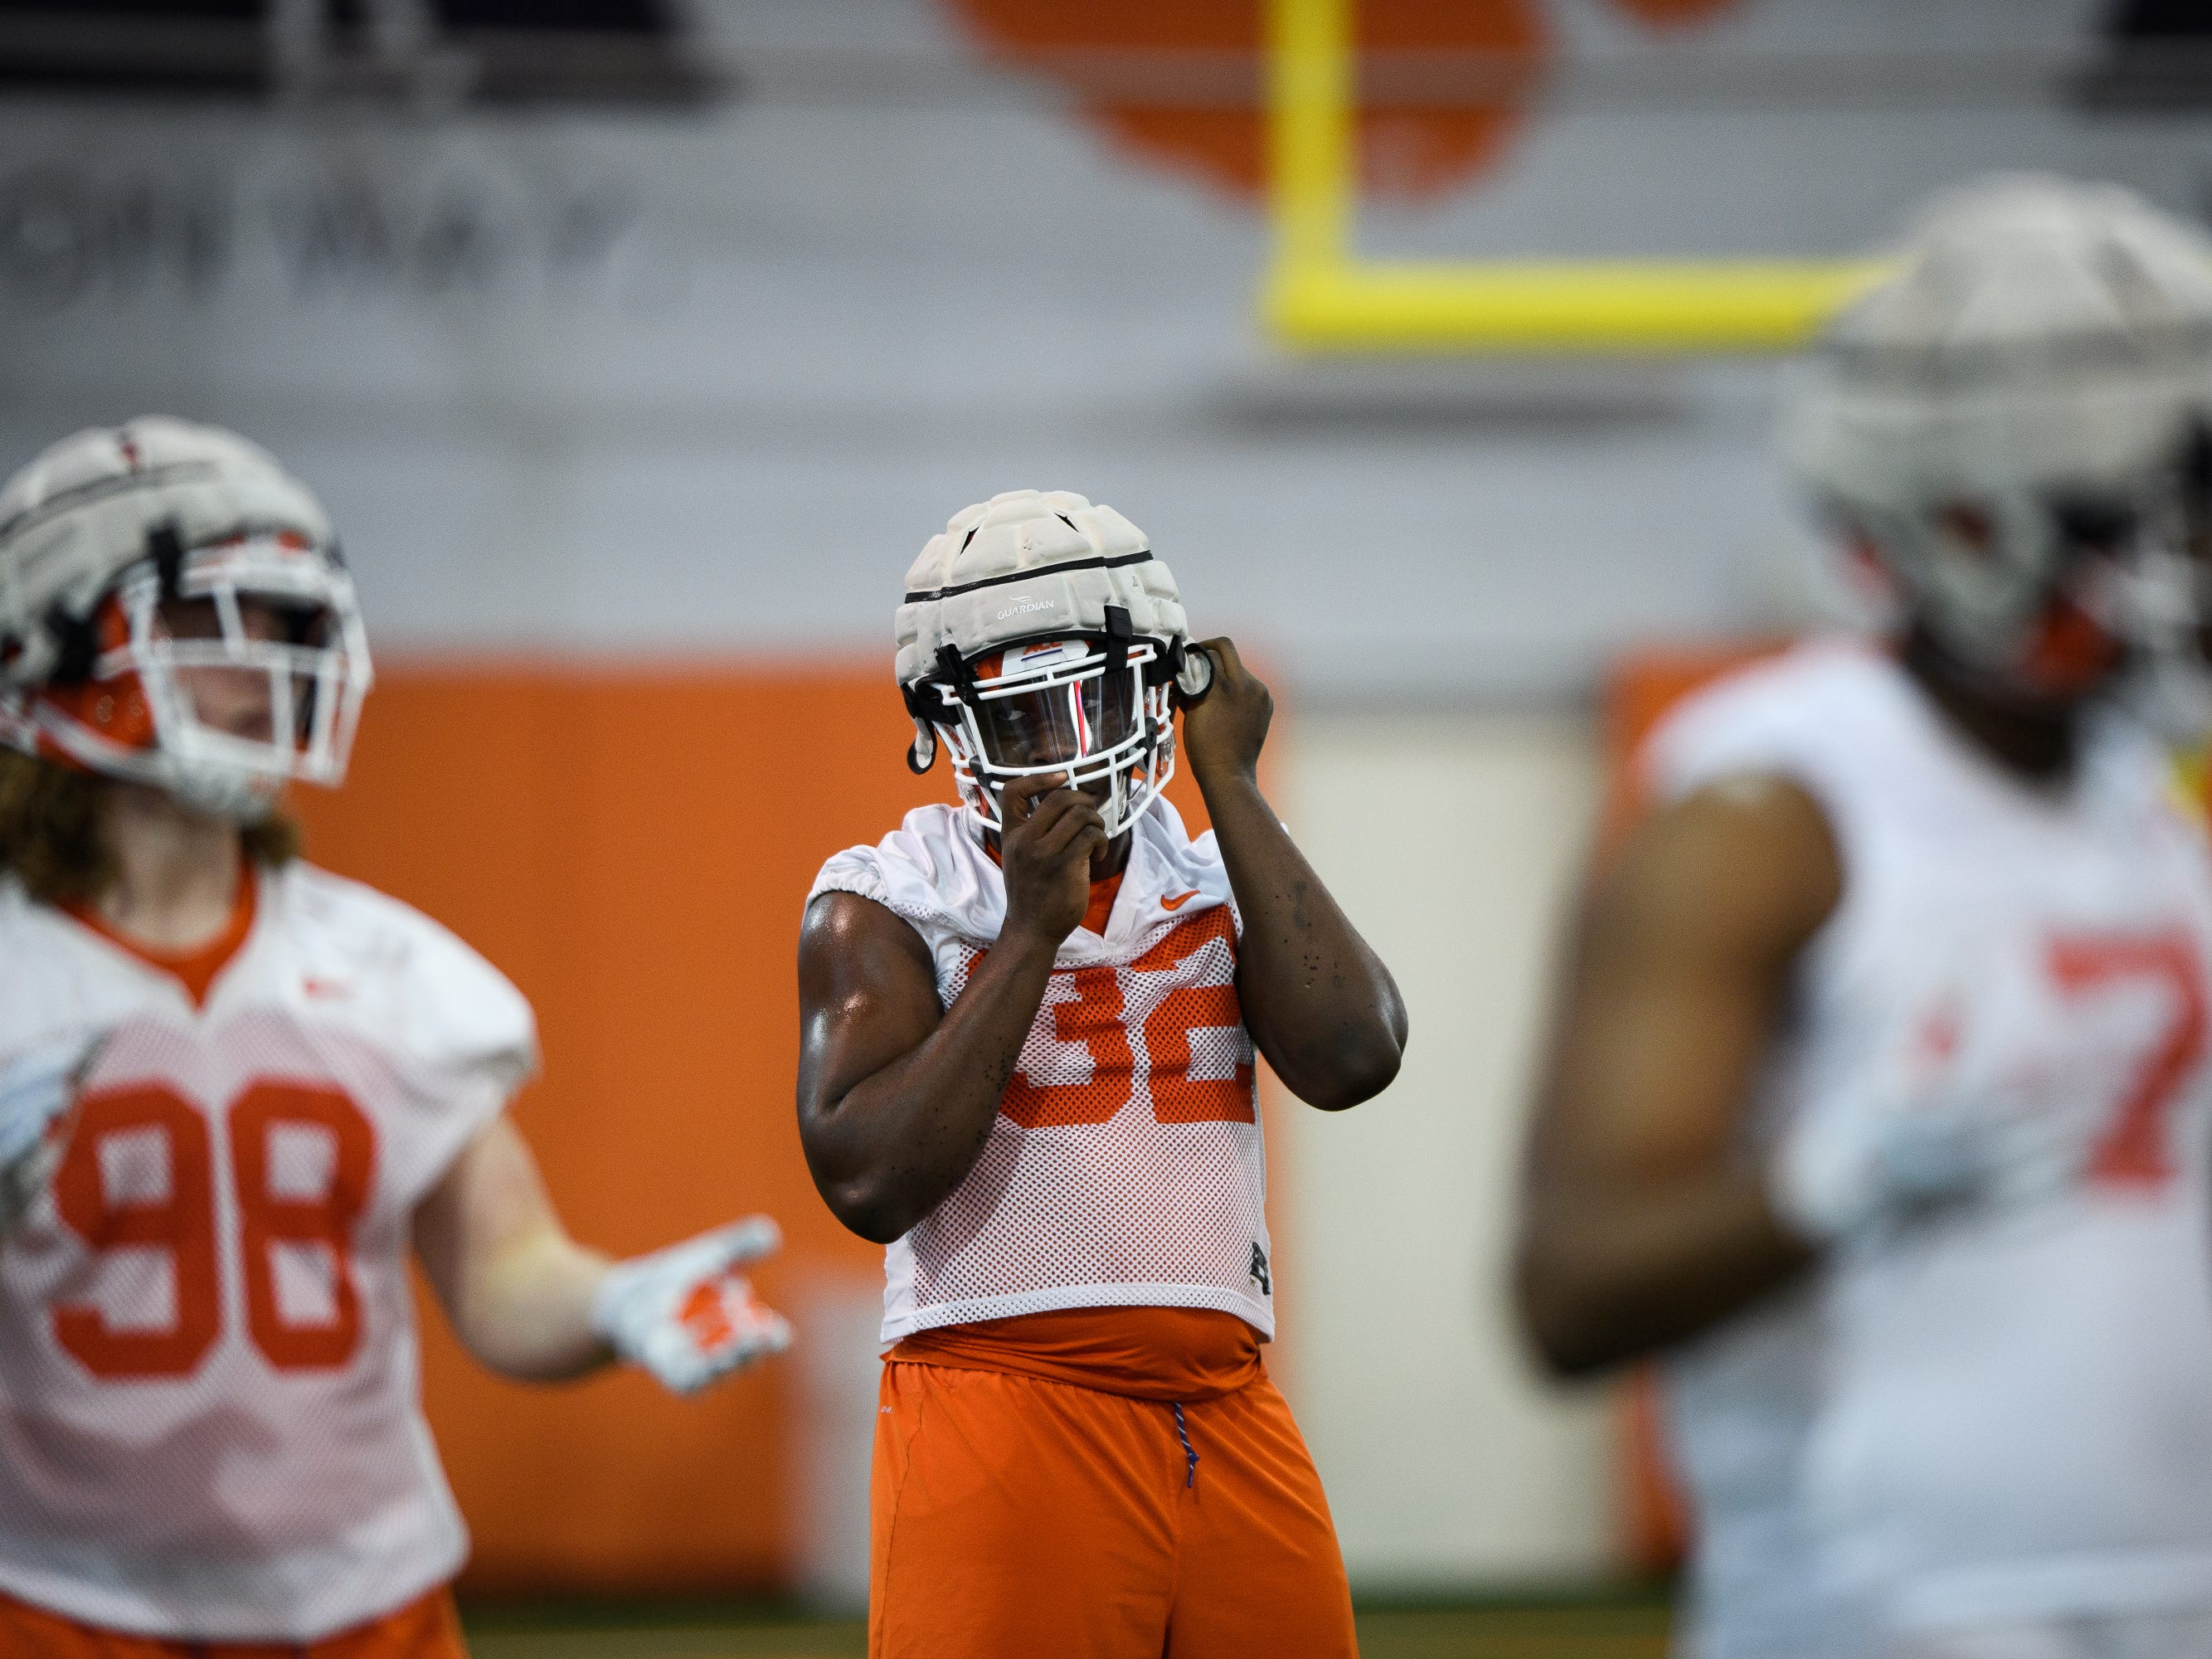 Clemson defensive lineman Etinosa Reuben (32) puts on his helmet during practice at the Allen Reeves Football Complex on Wednesday, Feb. 27, 2019.